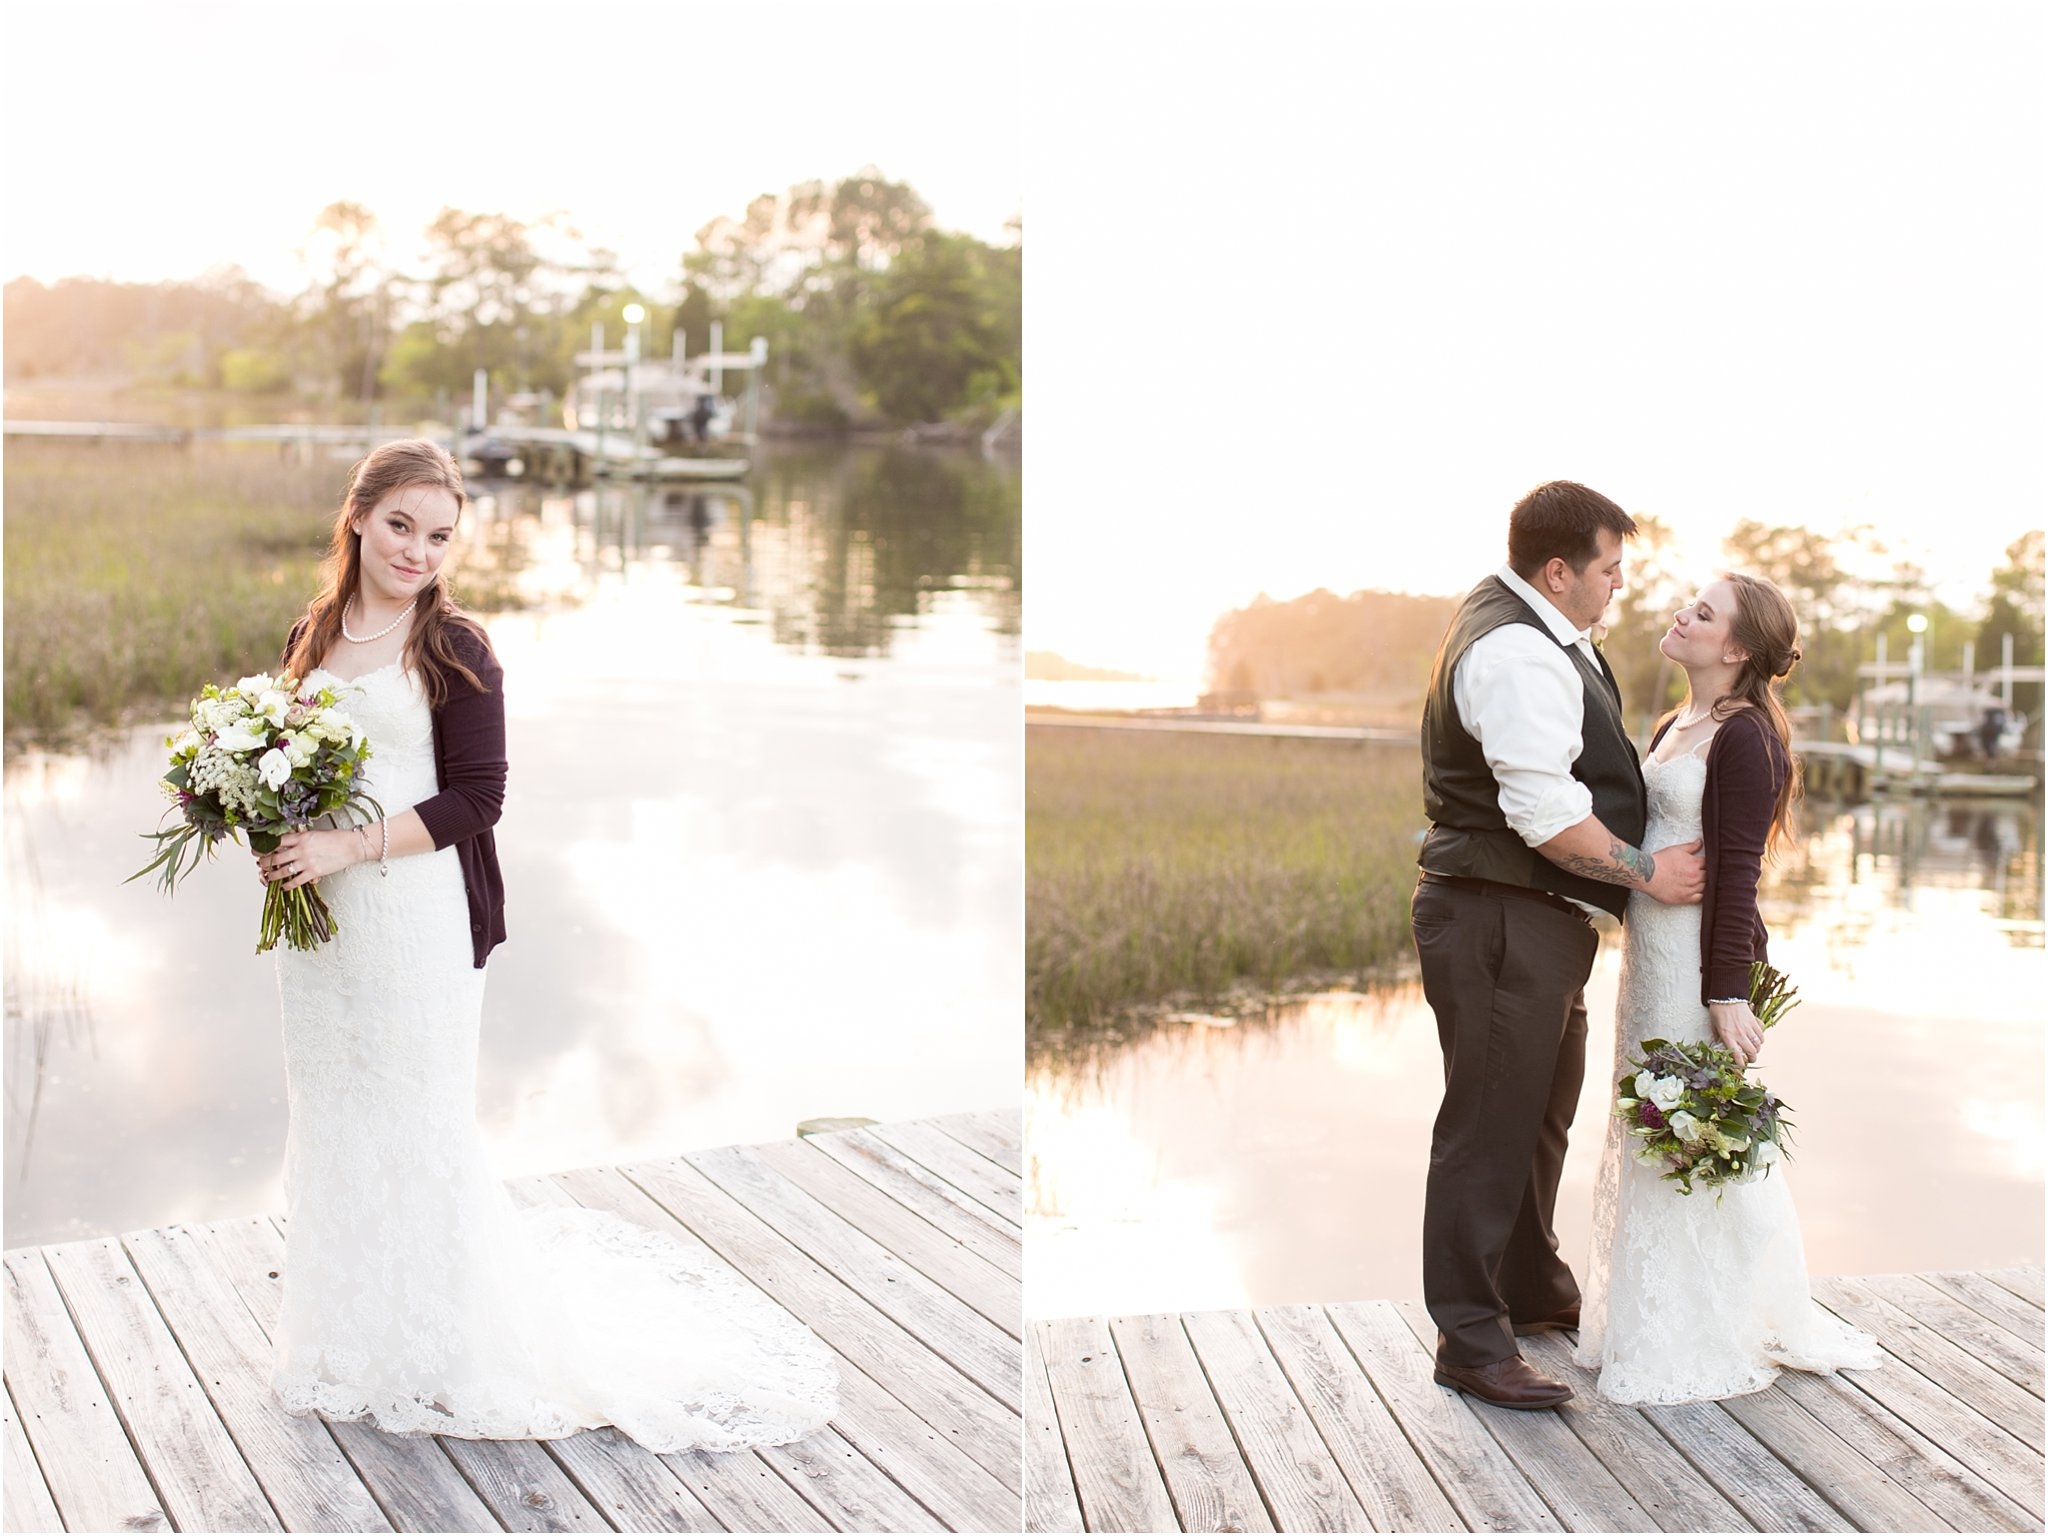 jessica_ryan_photography_virginia_virginiabeachwedding_bayislandvirginiabeach_backyardwedding_waterfrontwedding_intimatewedding_vintagewedding_1613